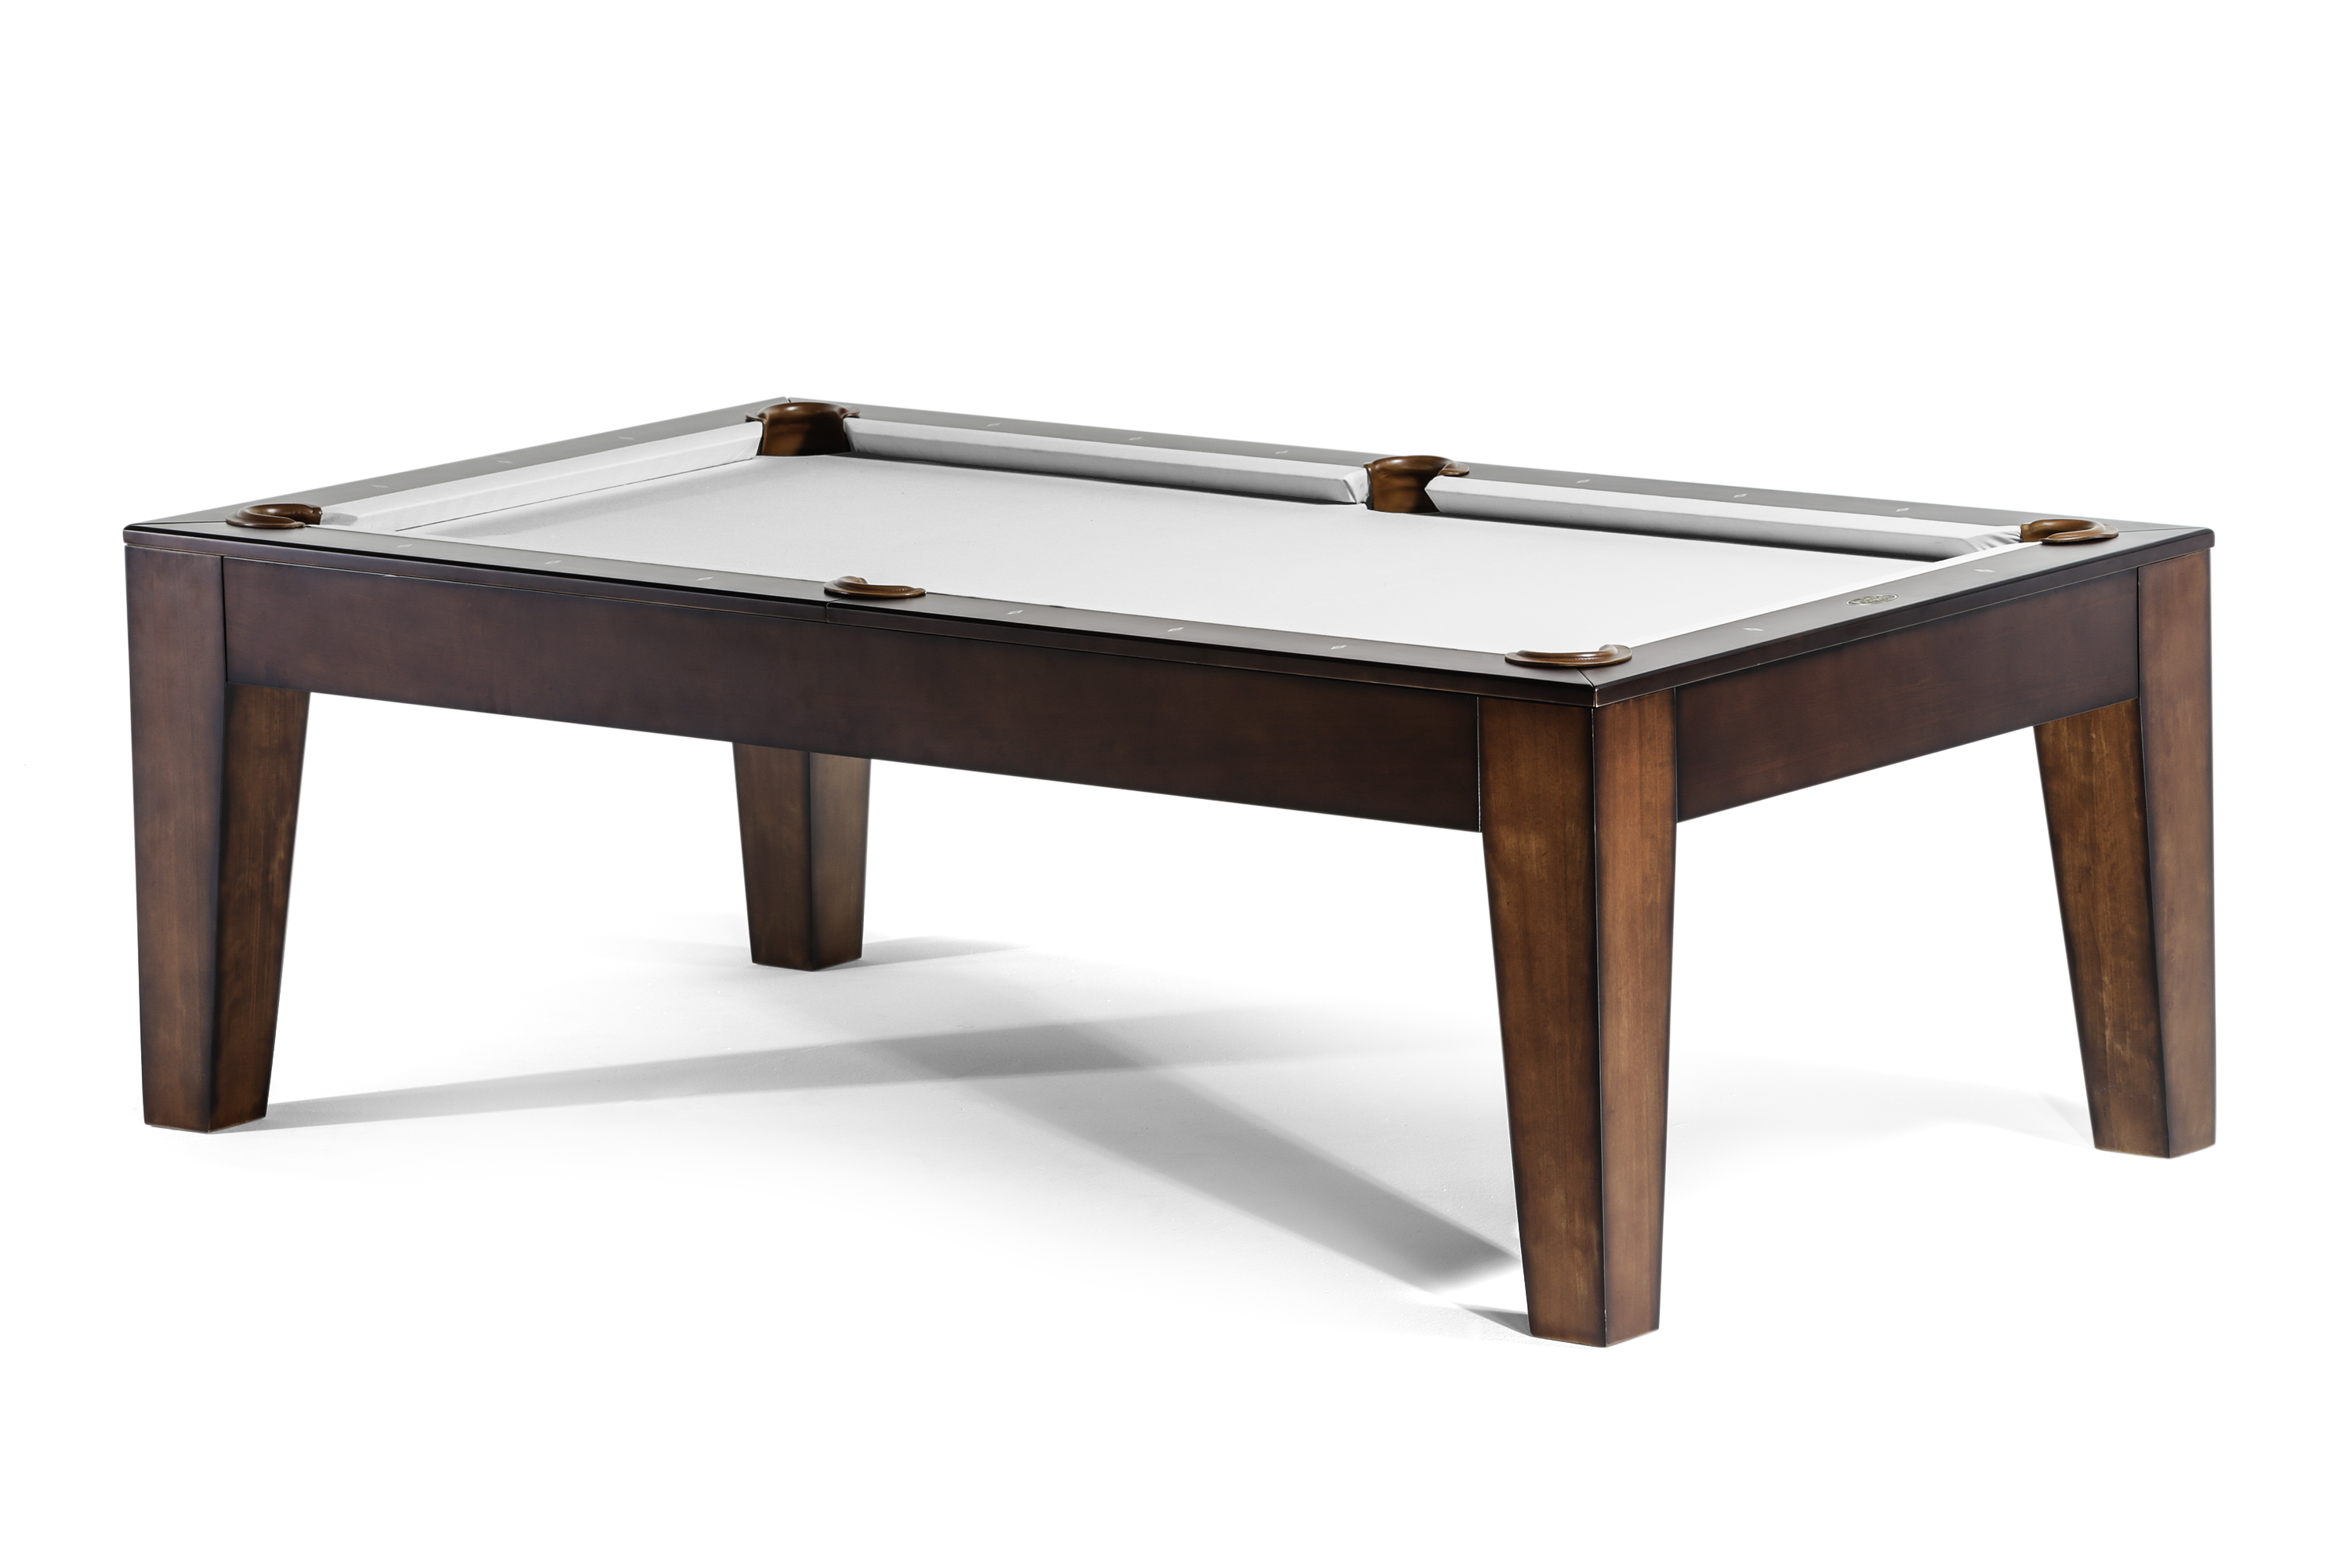 Spencer Marston Hawthorne Dining Pool Table